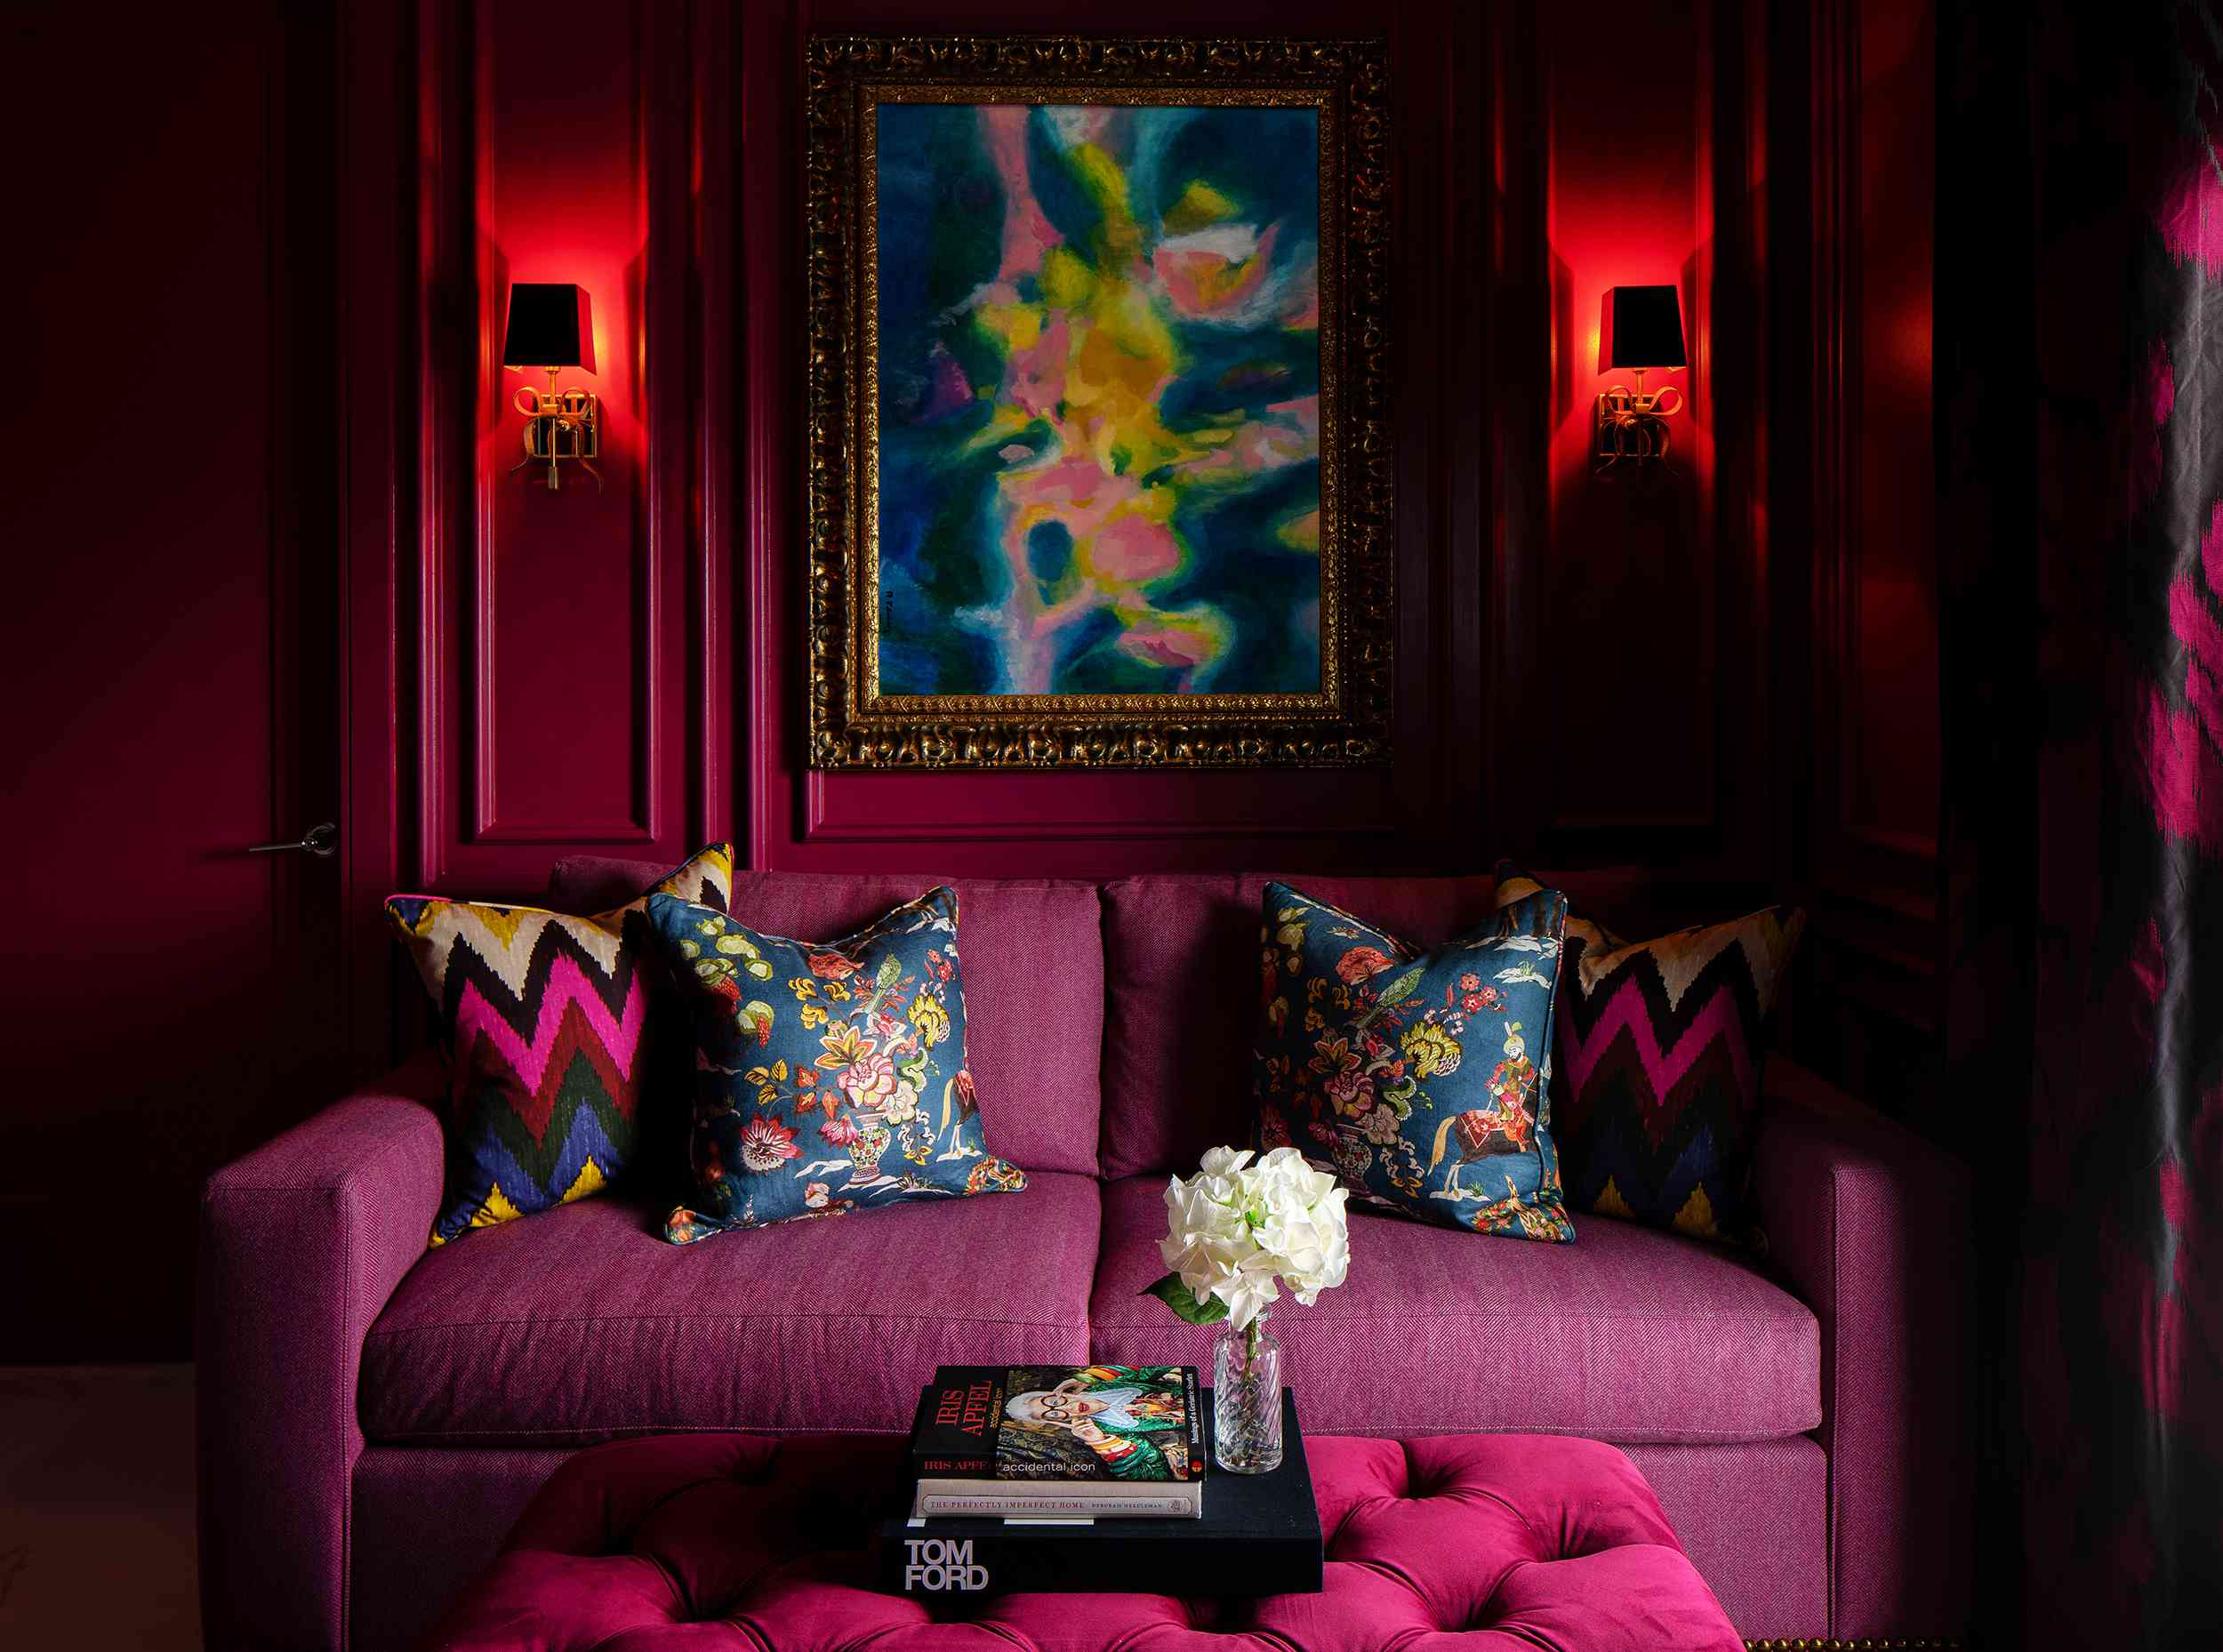 Lisa Gilmore's favorite room - raspberry room with pink couch and wainscoting